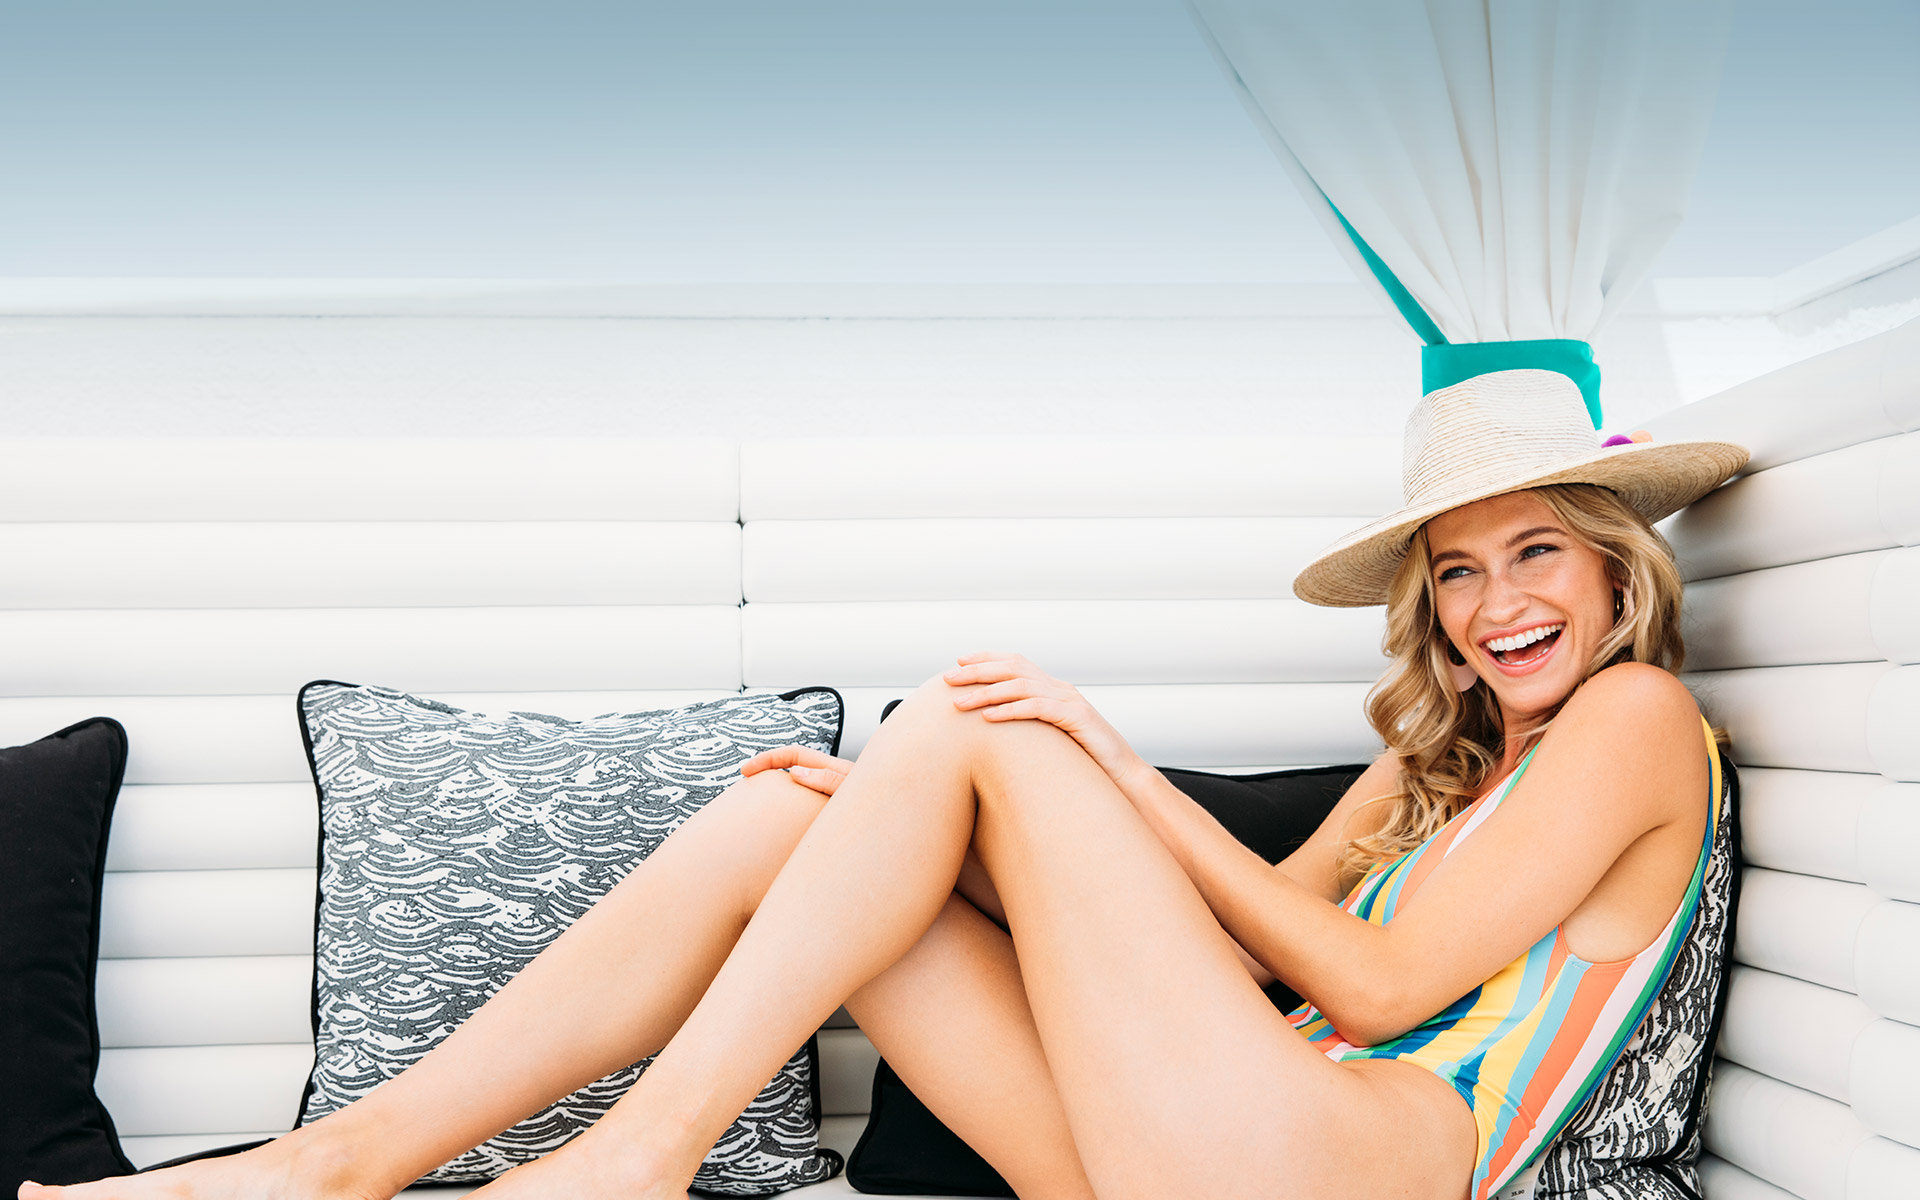 woman wearing a one piece swimsuit sitting on a cushioned bench outside